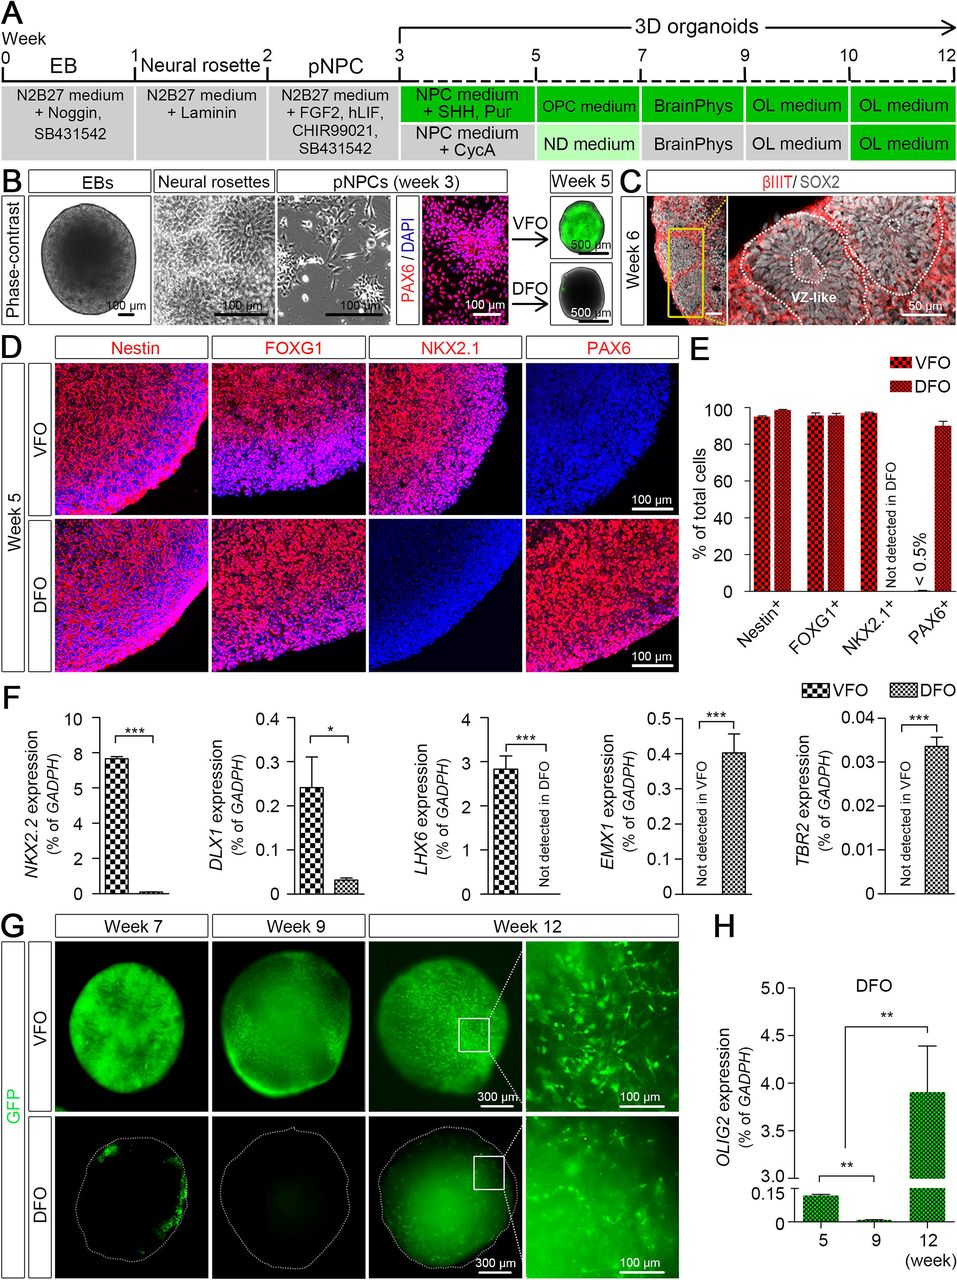 Neurotoxicity Predicted By Organoids >> Pluripotent Stem Cell Derived Cerebral Organoids Reveal